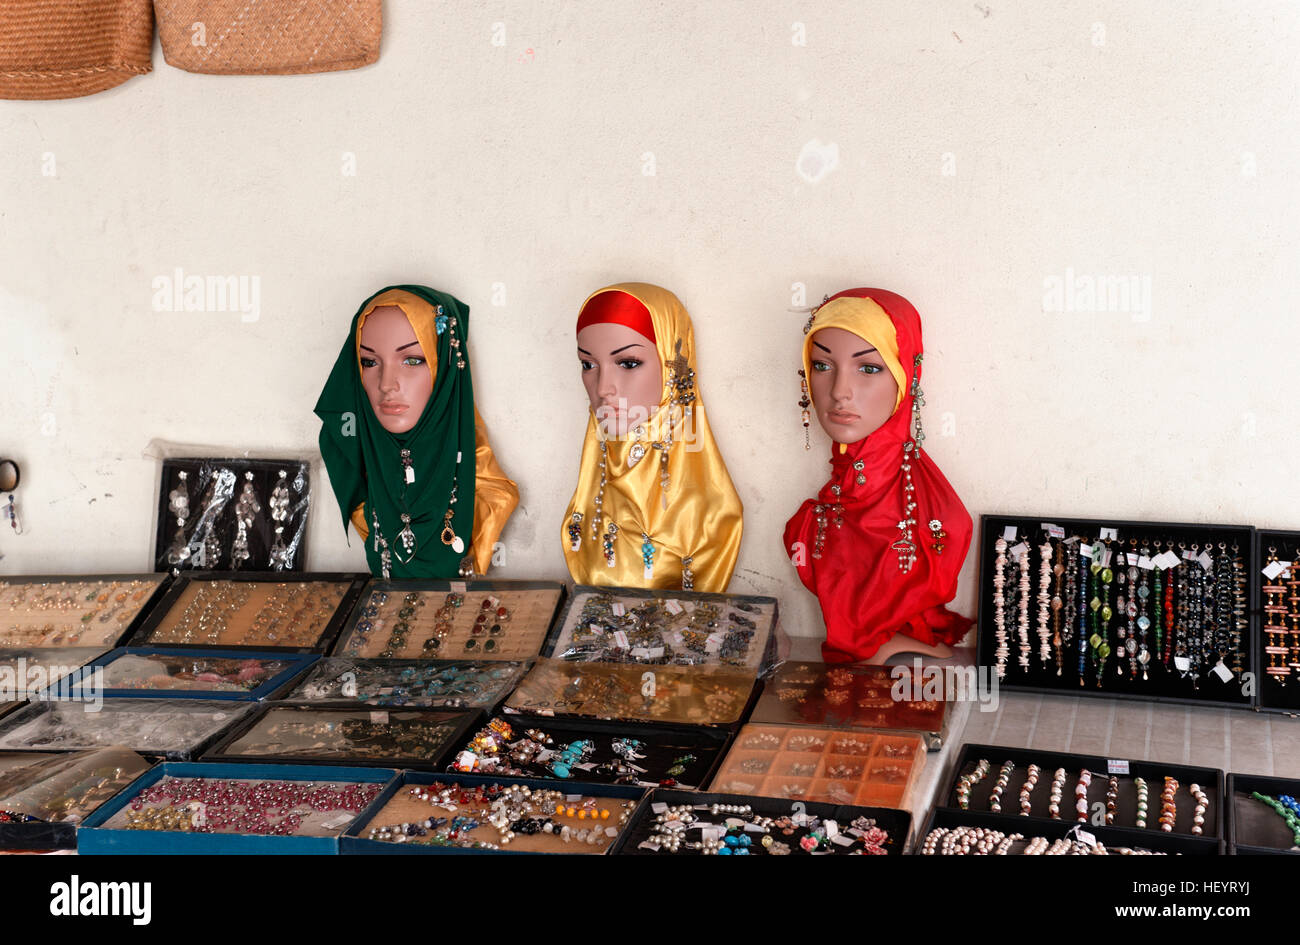 Traditional Muslim female head ware Hijabs on sale in Malaysian market stalls - Stock Image